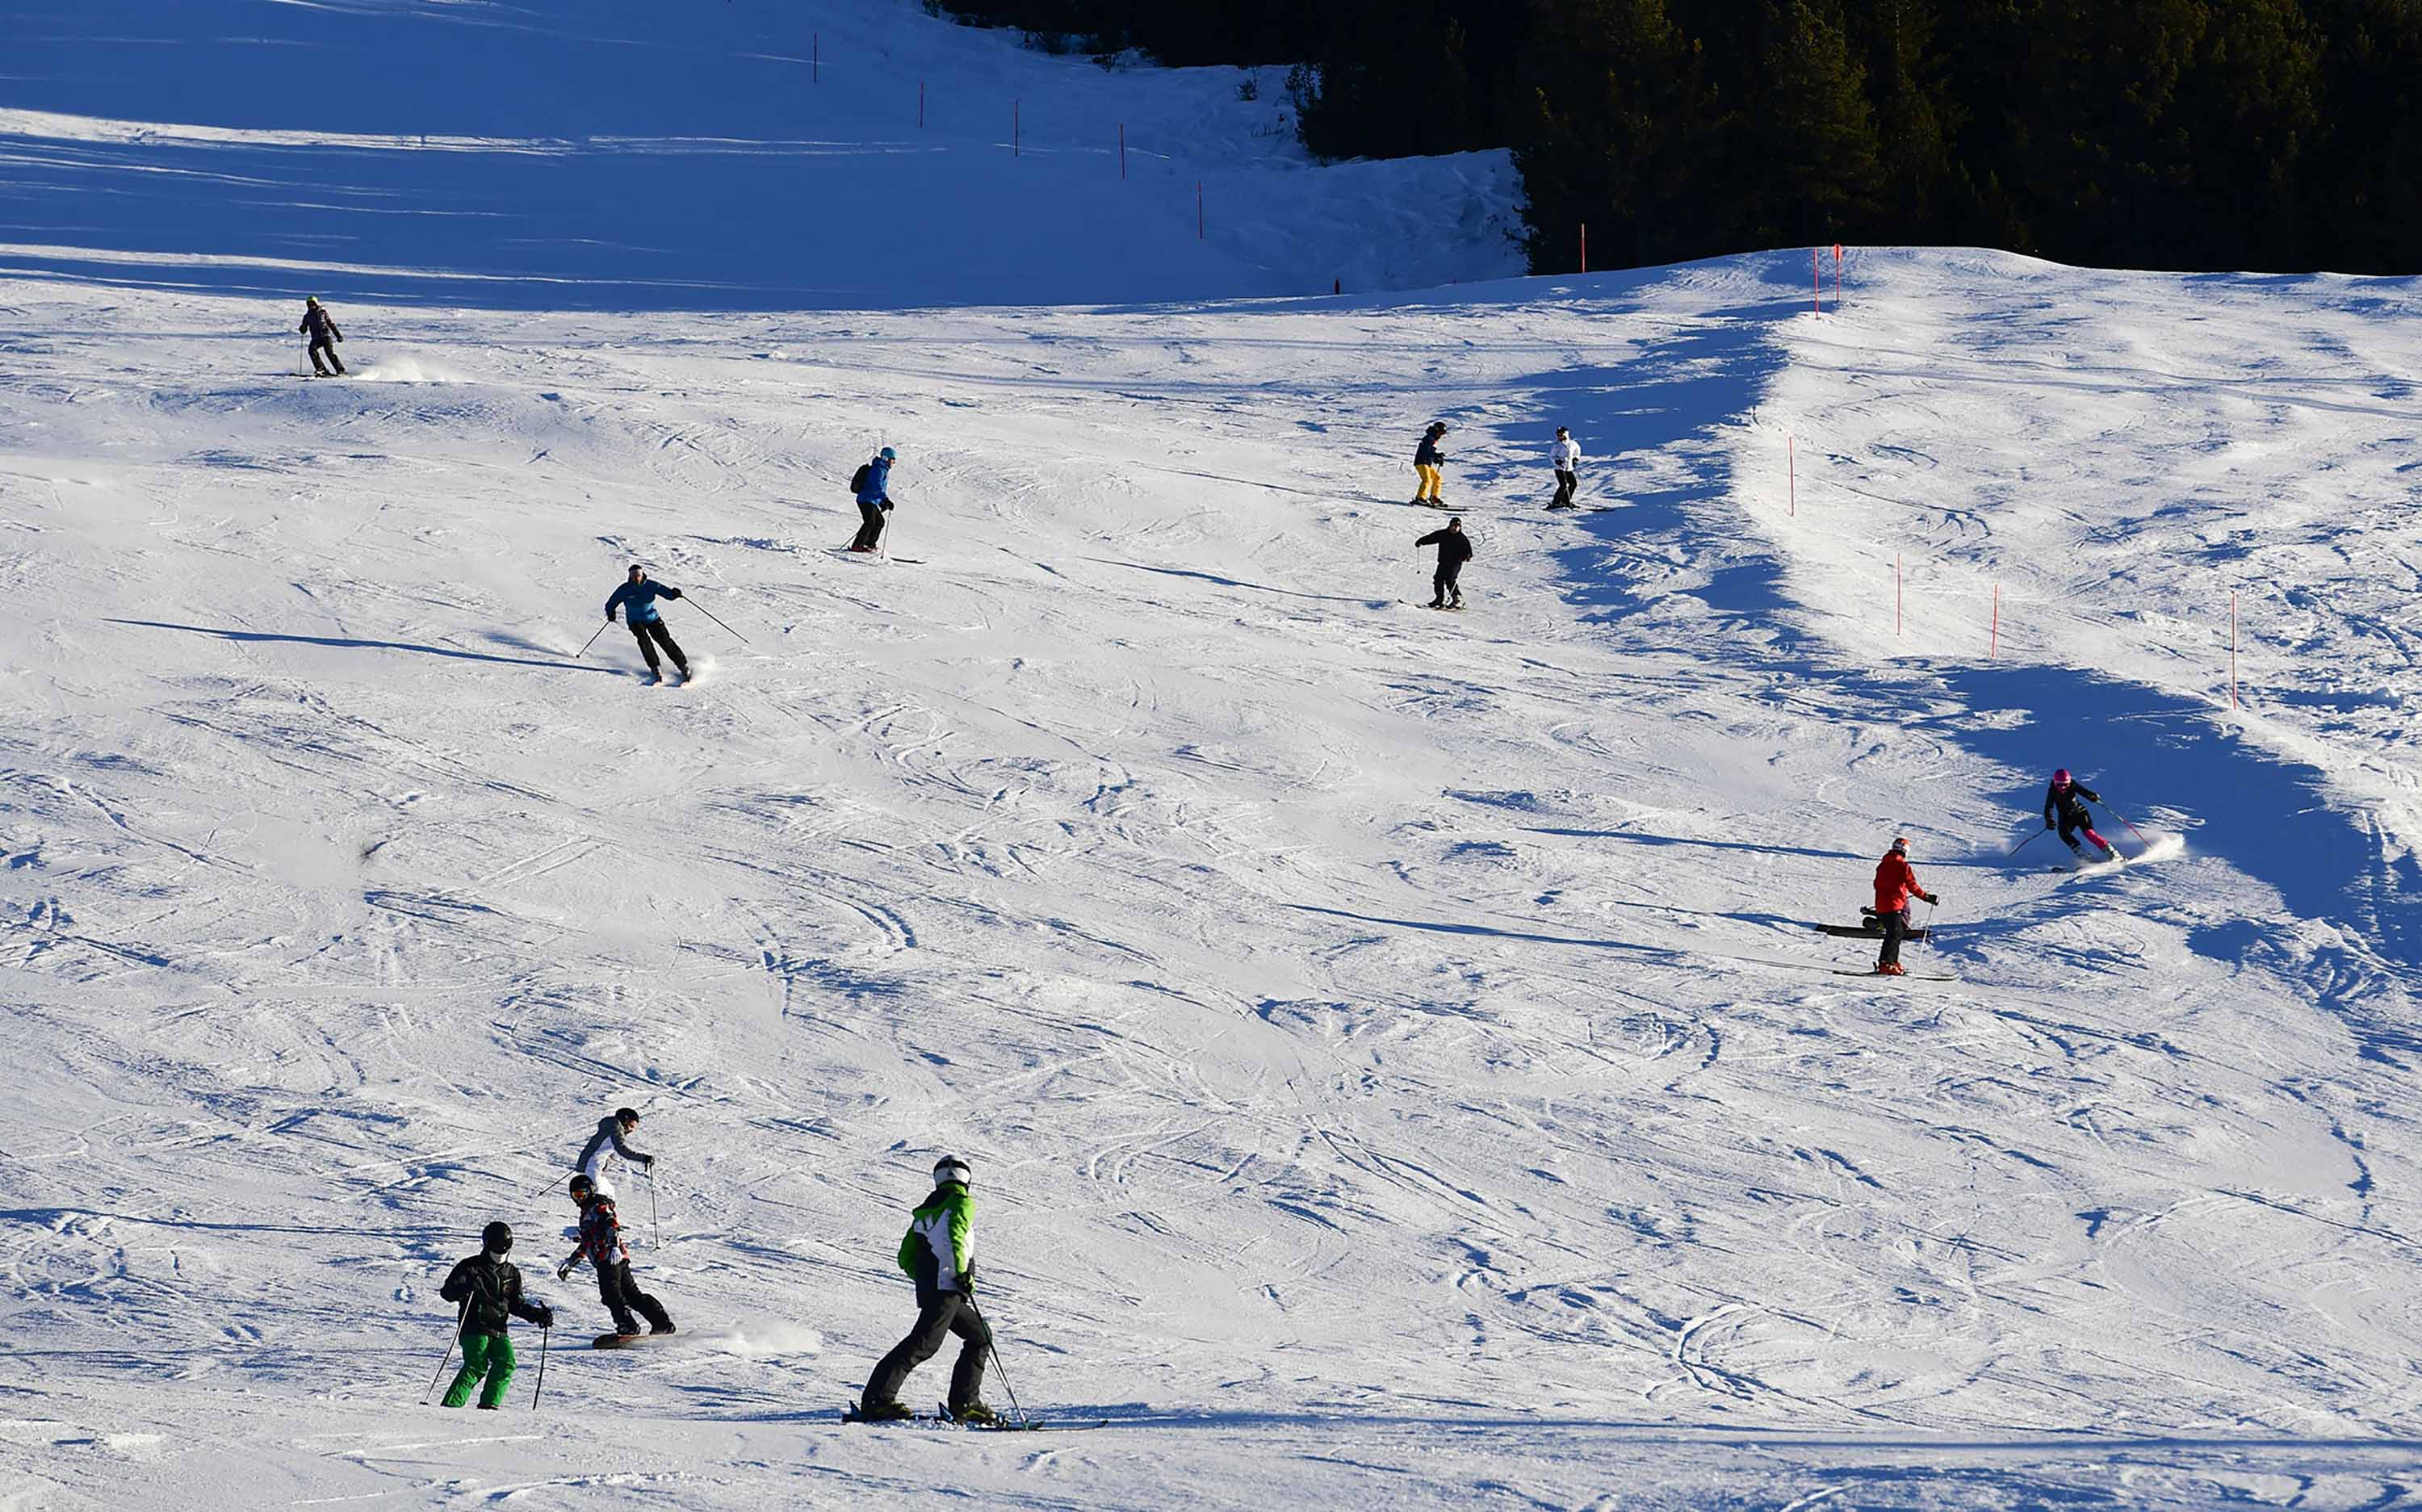 Tourists ski at the Stelvio National Park resort in Bormio, Italy, on December 26, 2018.